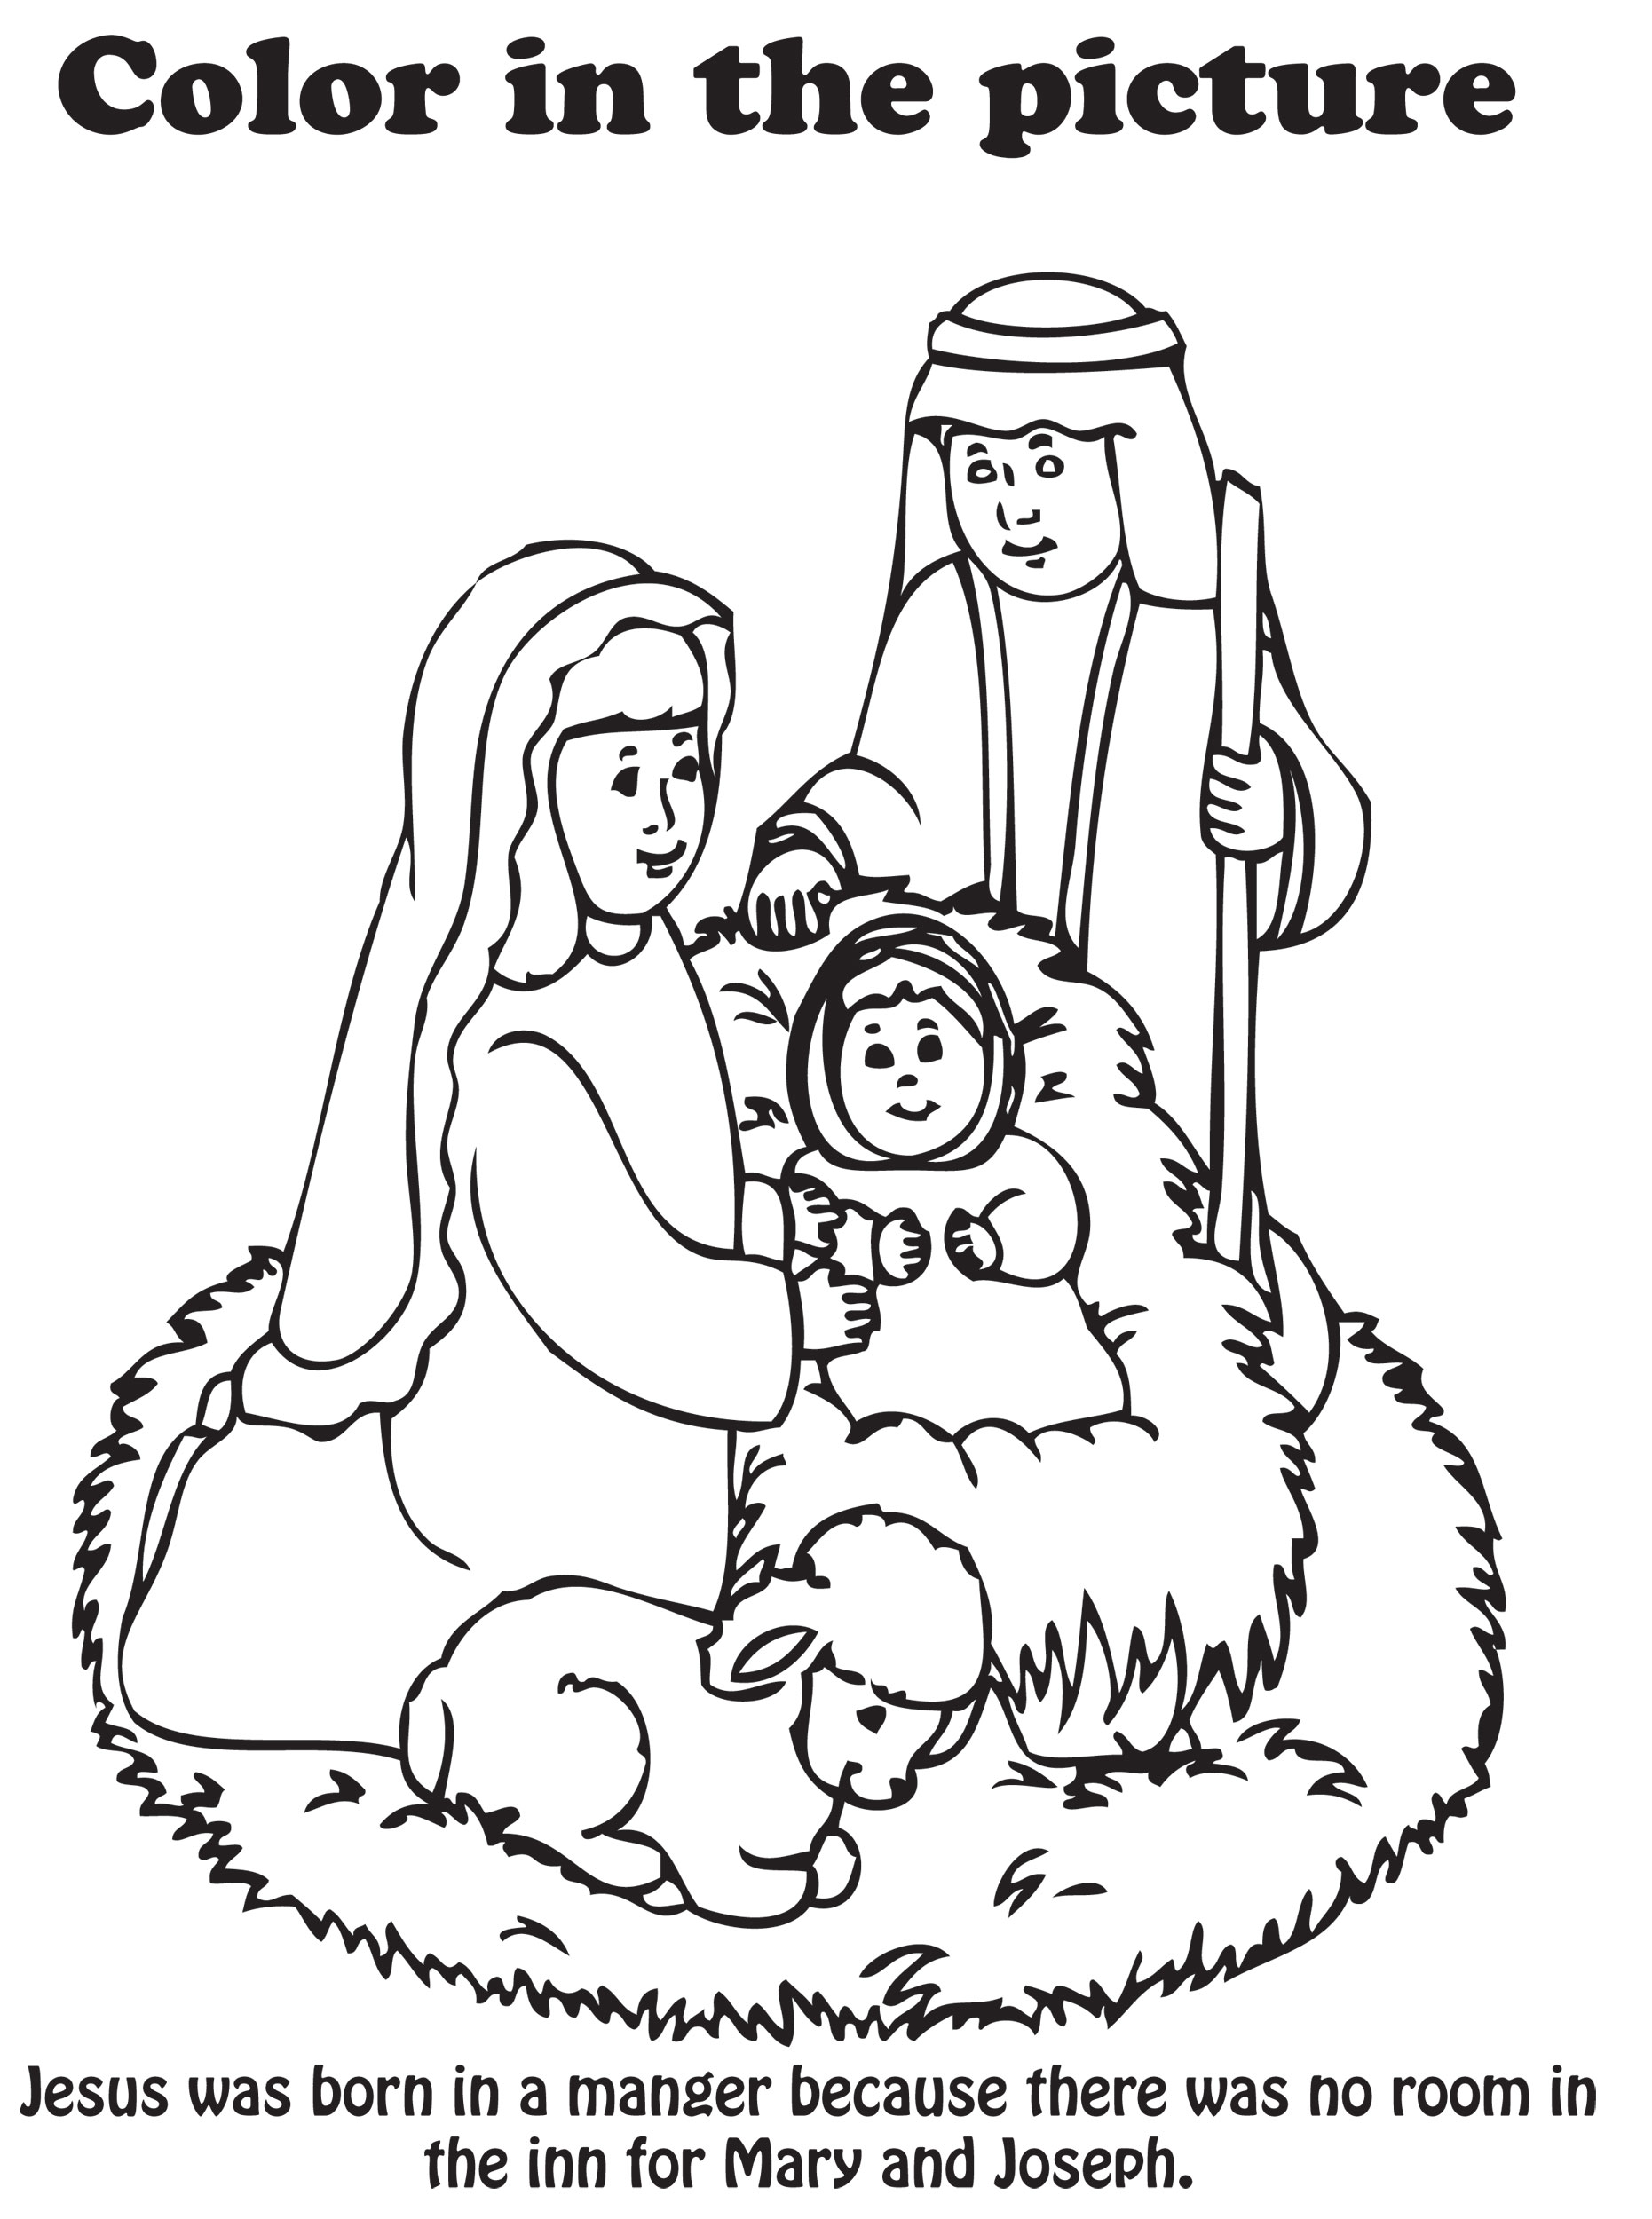 Nativity scene coloring page for preschoolers coloring pages for Nativity scene coloring pages preschoolers